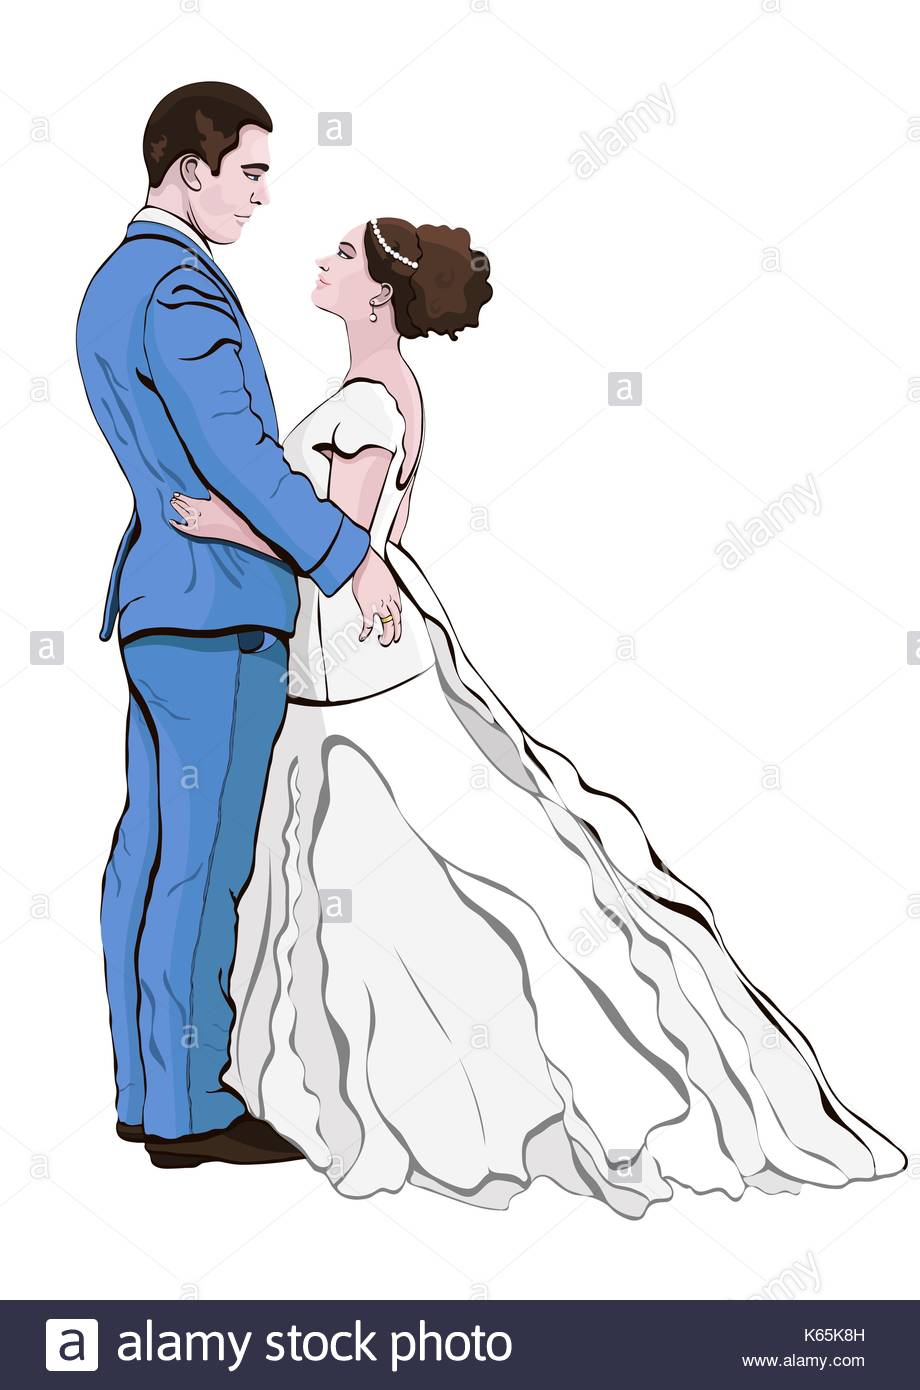 920x1390 Bride And Groom Cartoon Vector, Hand Drawing. Couple In Love